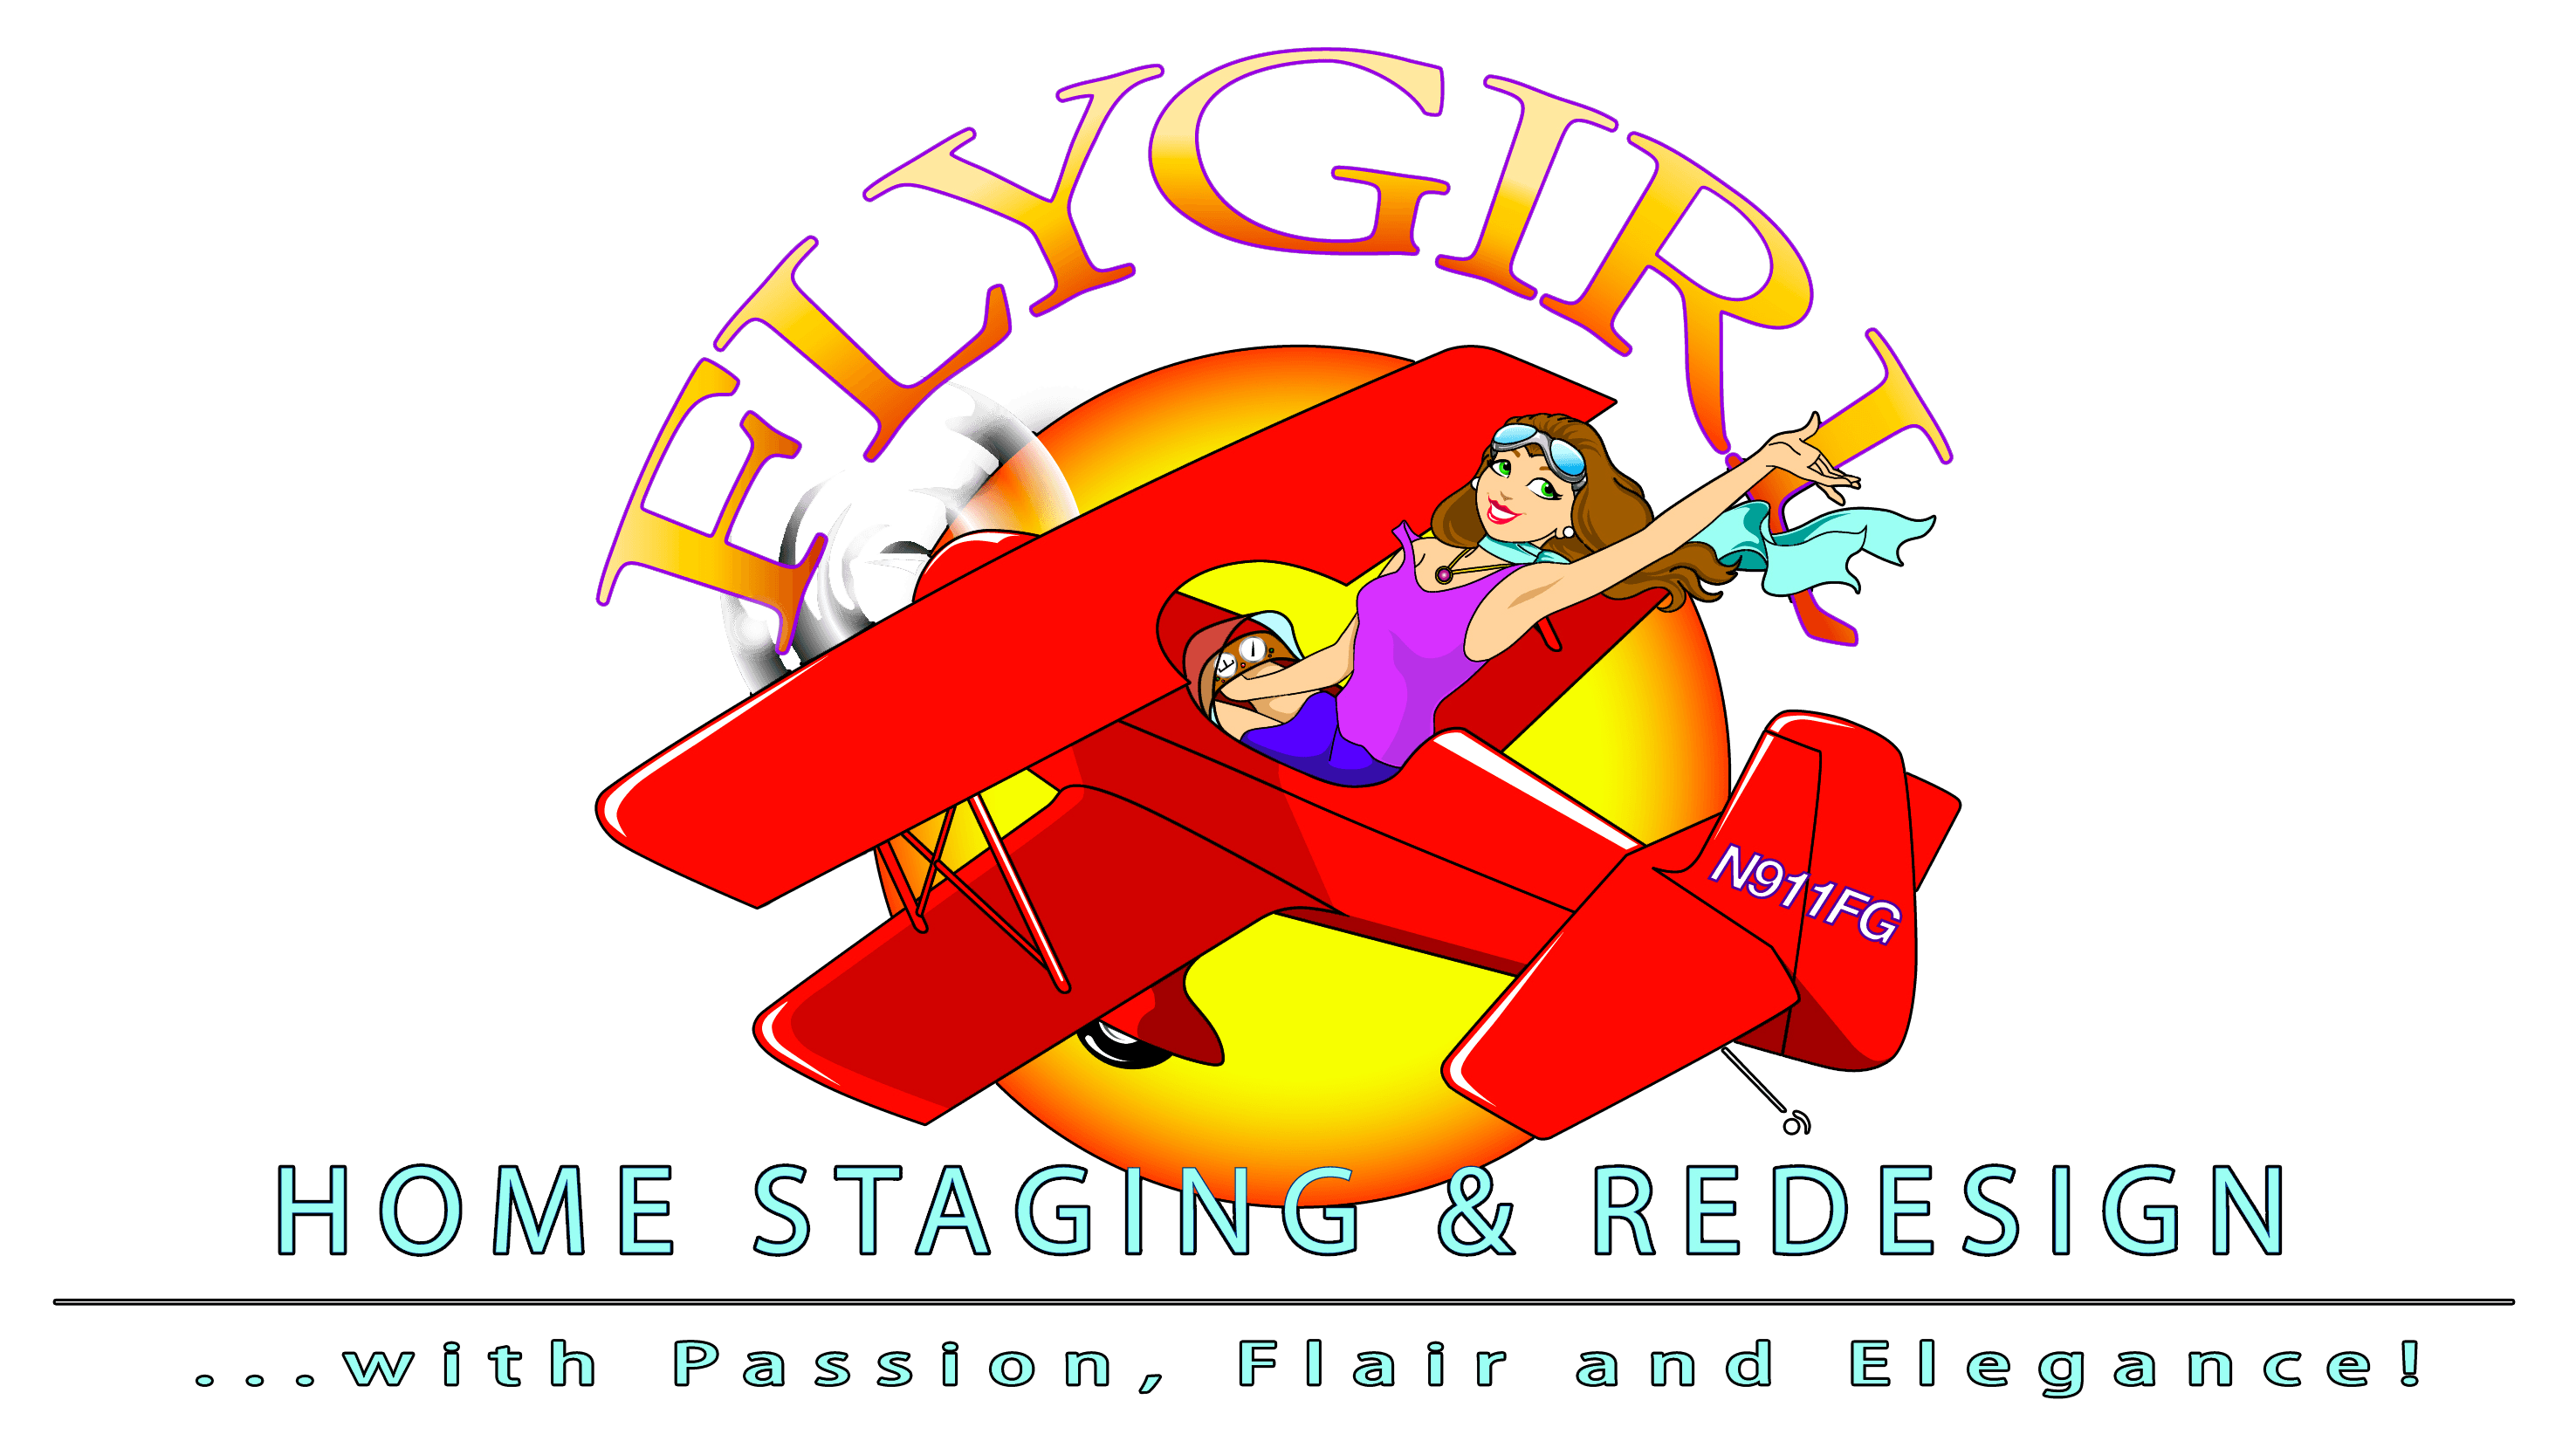 FlyGirl Home Staging & Redesign